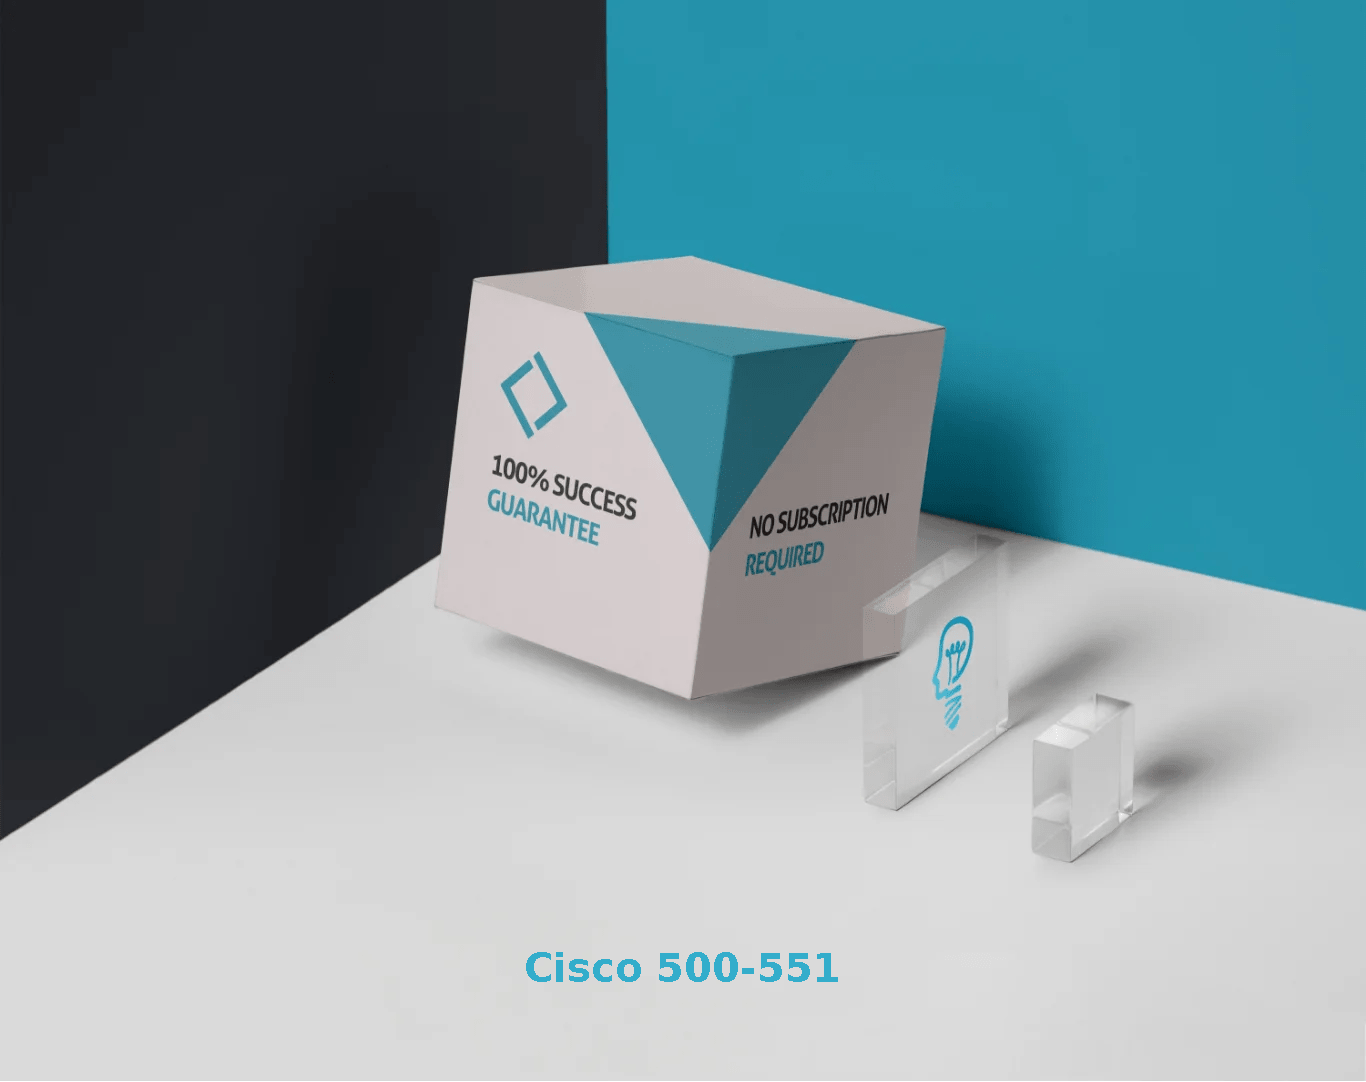 Cisco 500-551 Exams